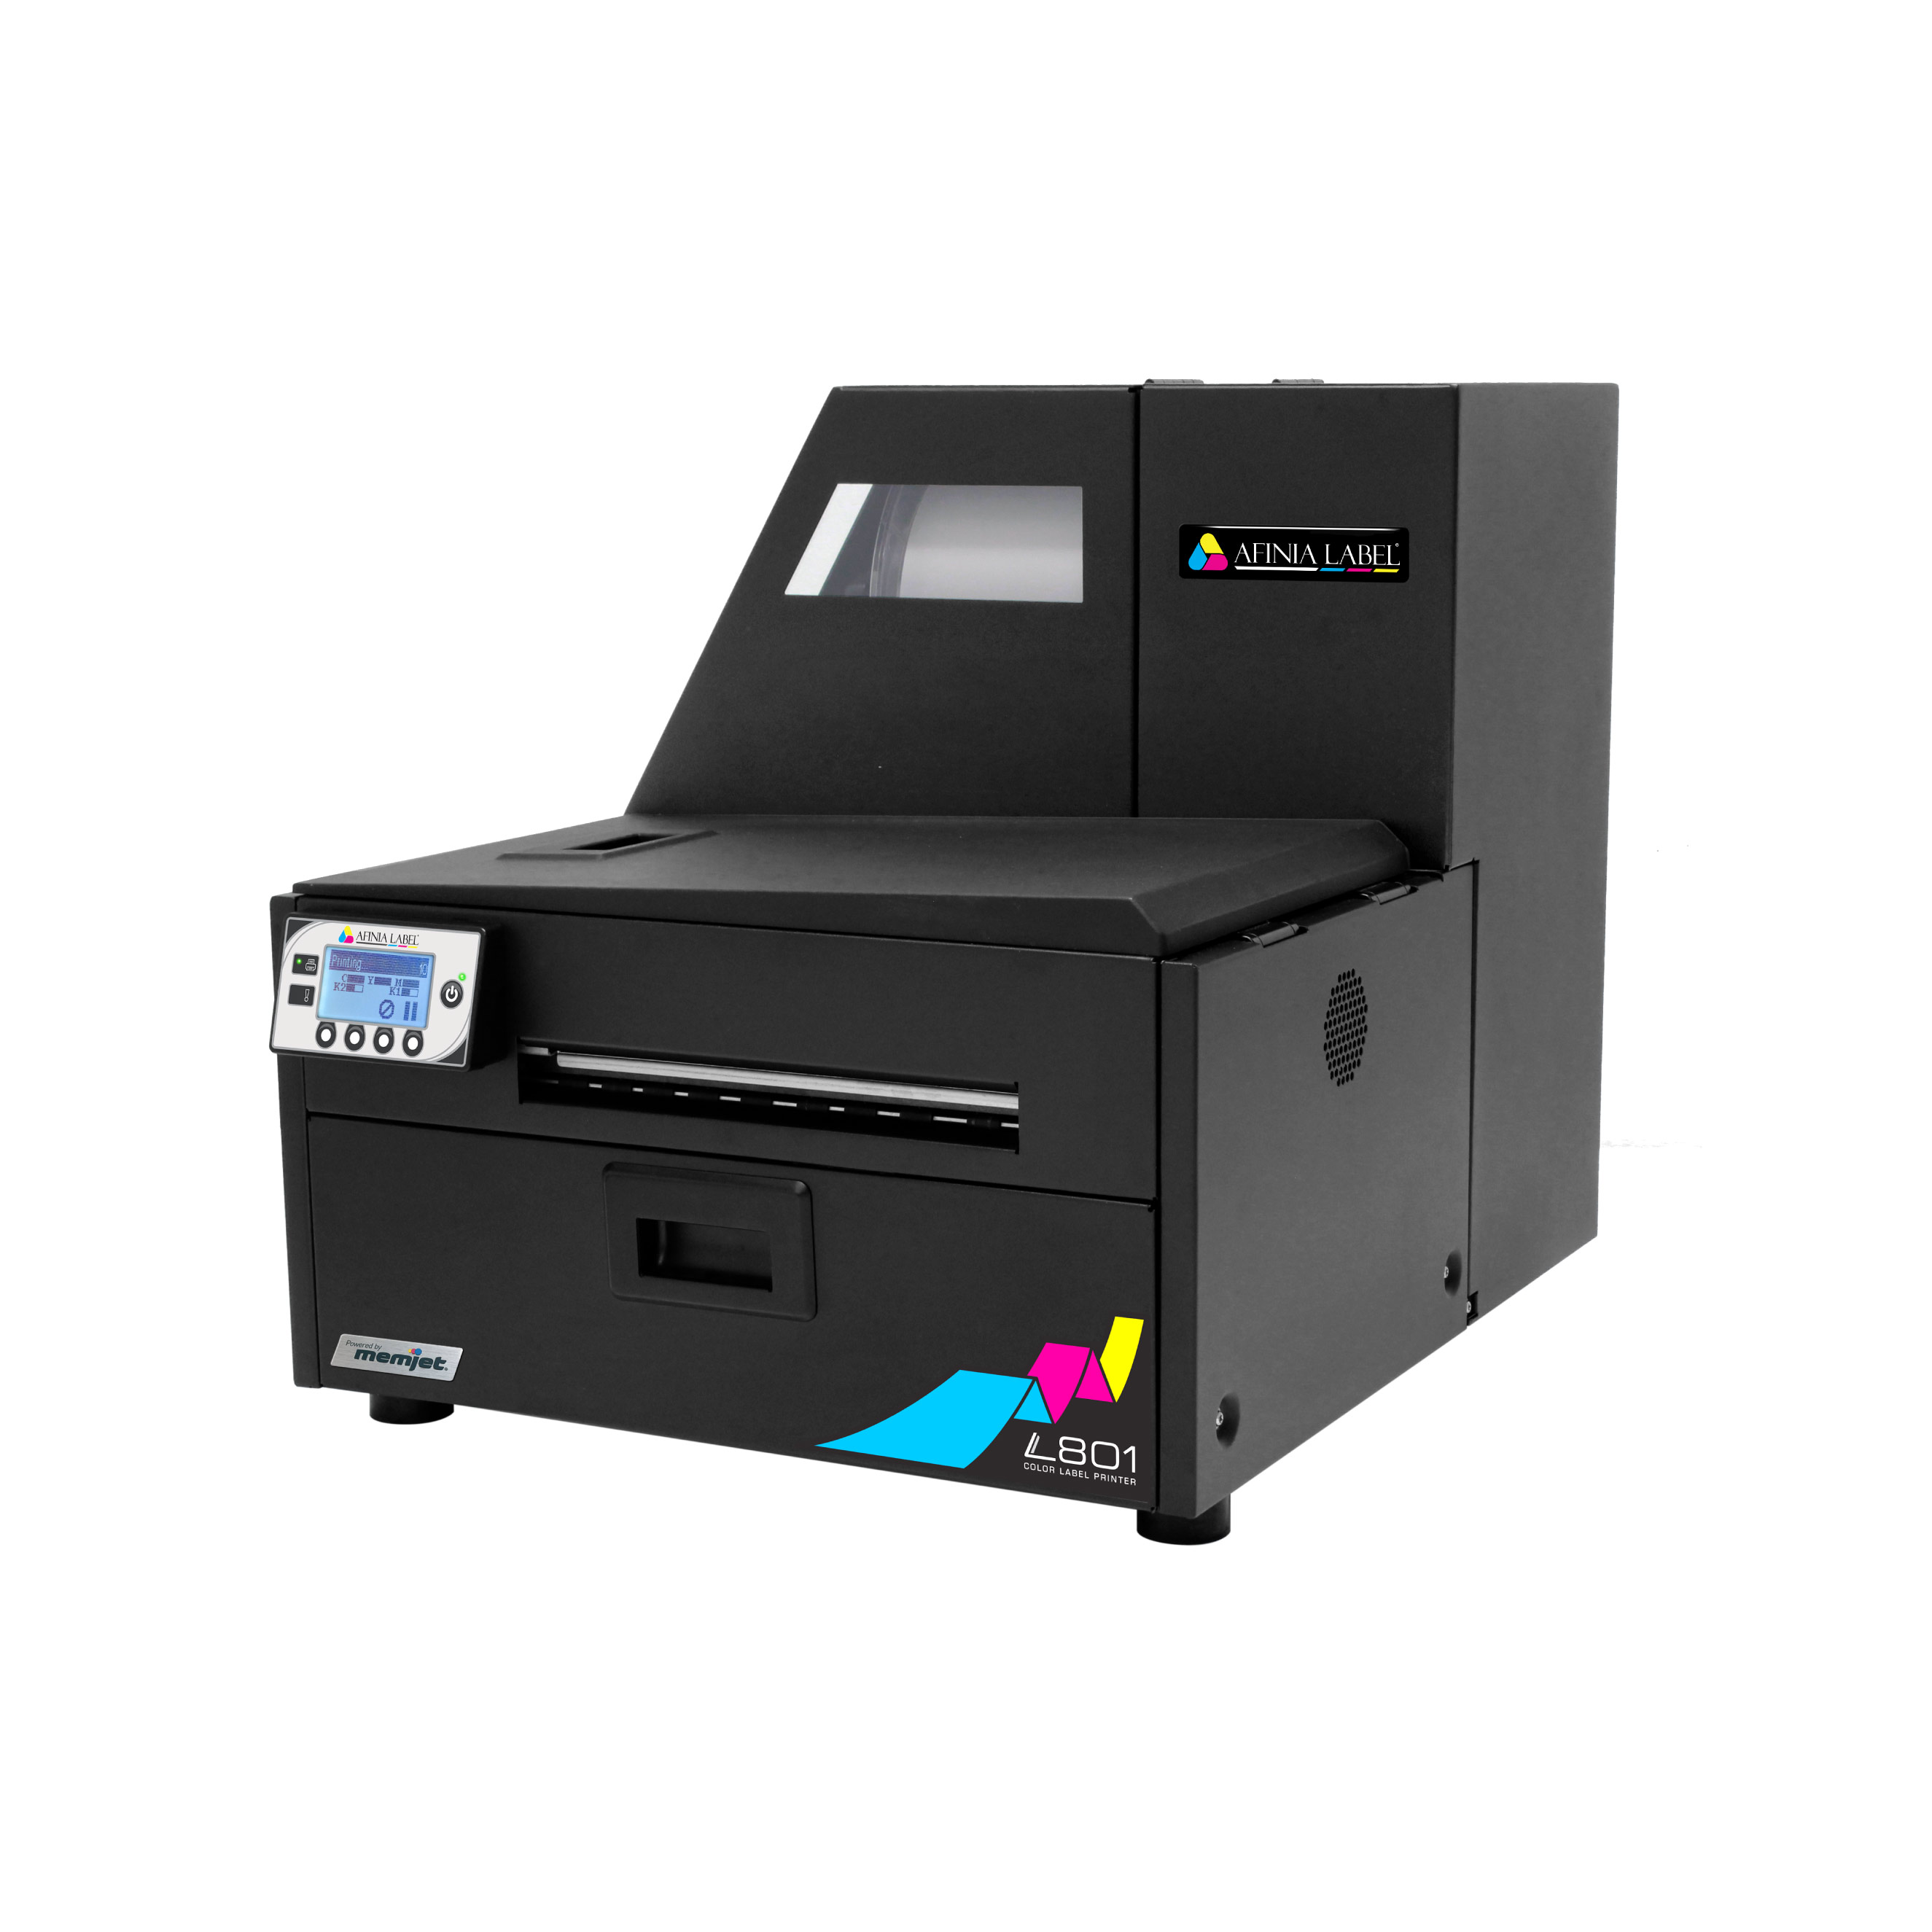 Afinia L801 Color Label Printer – Texas Label Printers, LLC